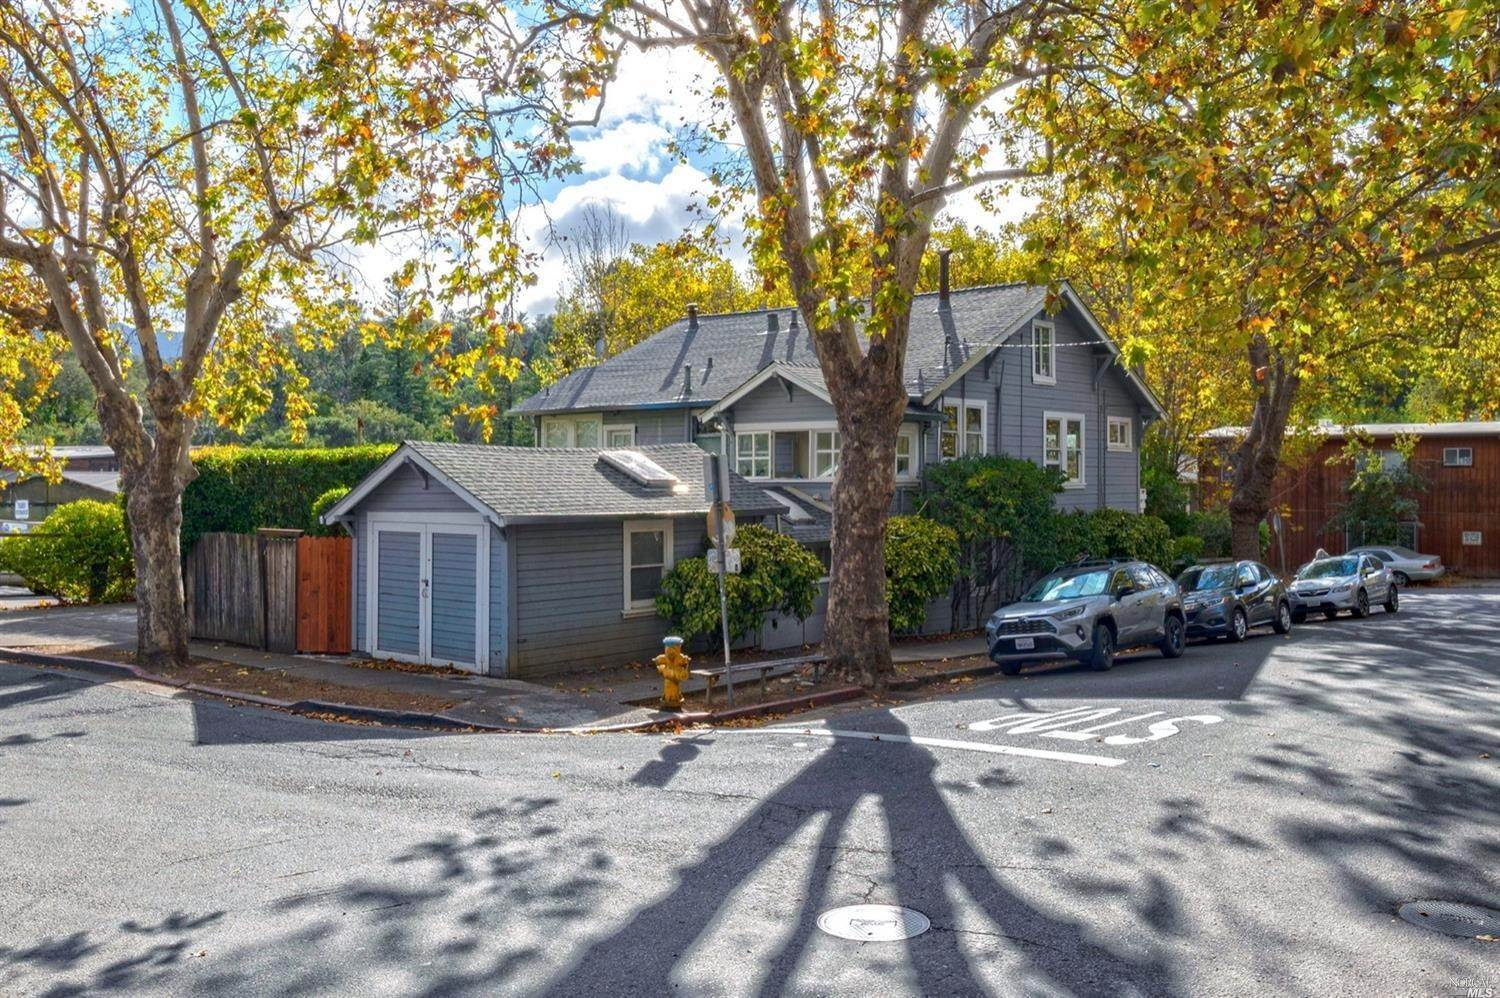 Property for Sale at 1 Spruce Road Fairfax, California 94930 United States